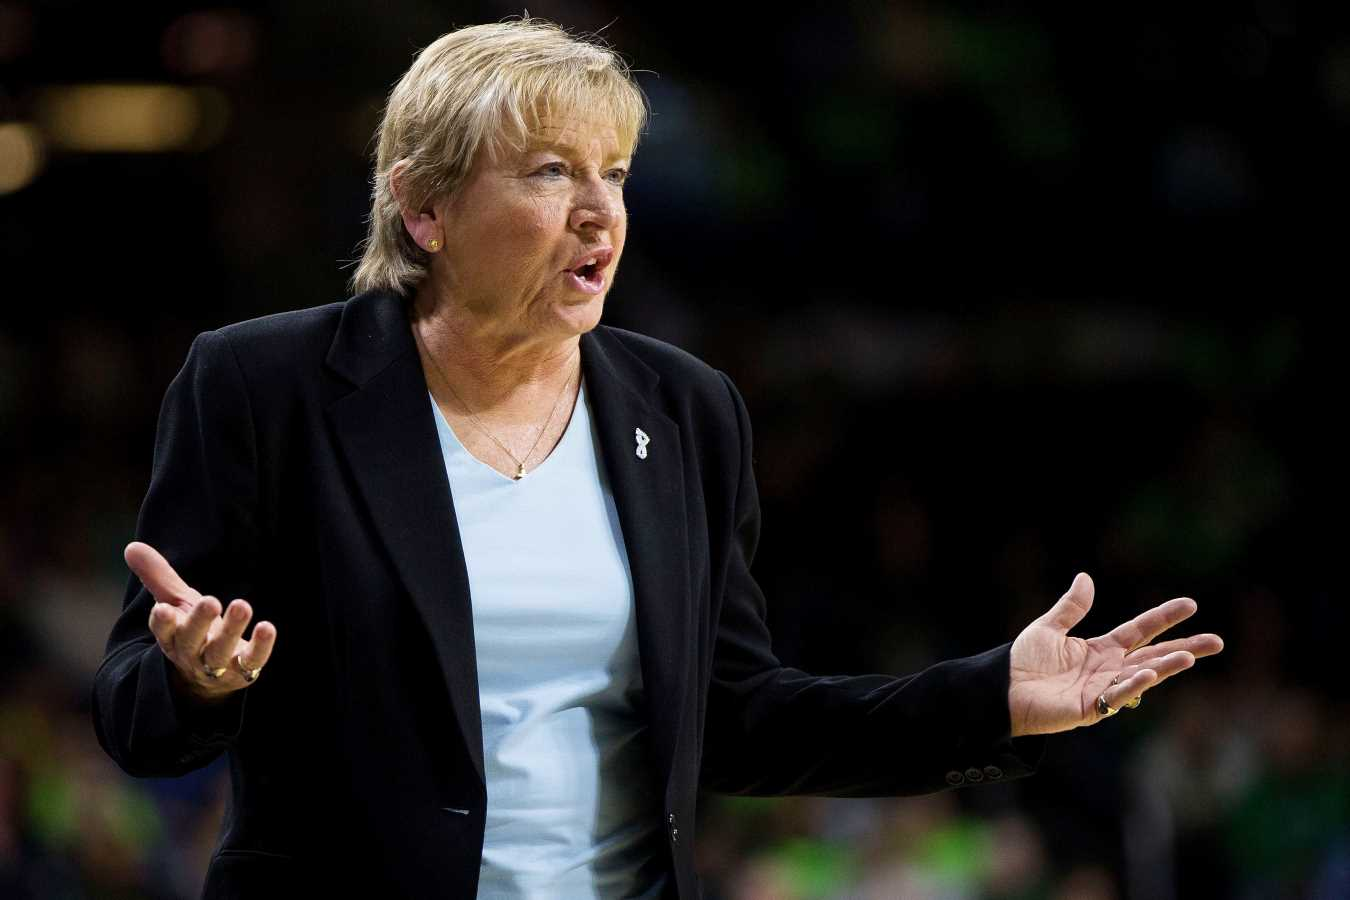 North Carolina Basketball Coach Sylvia Hatchell Resigns After 33 Years Following Investigation